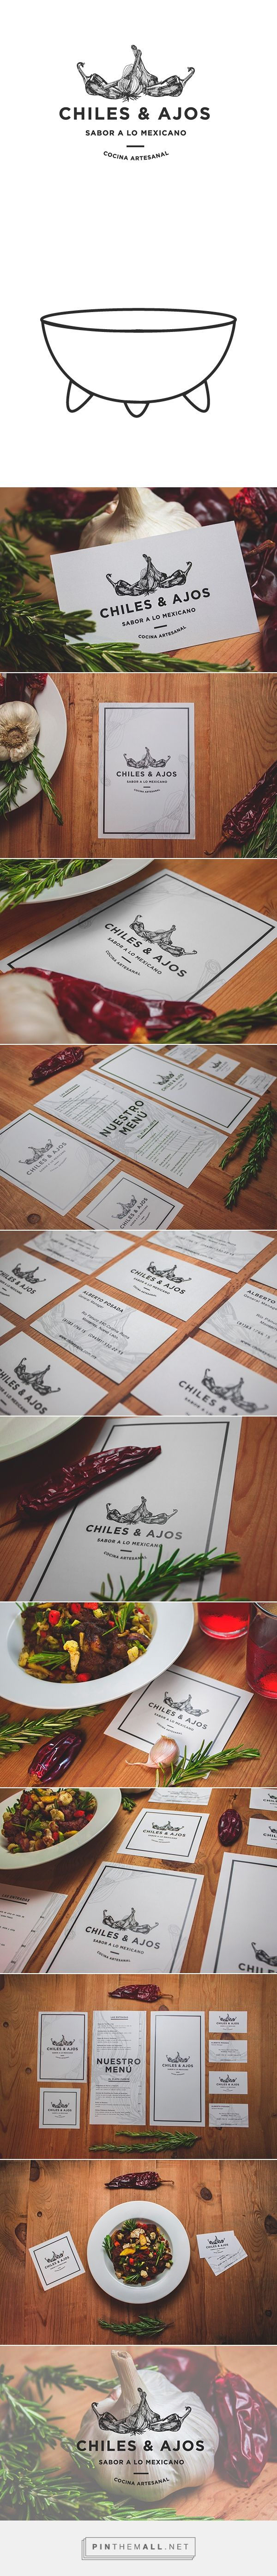 CHILES & AJOS | Restaurant Branding on Behance - created via http://pinthemall.net